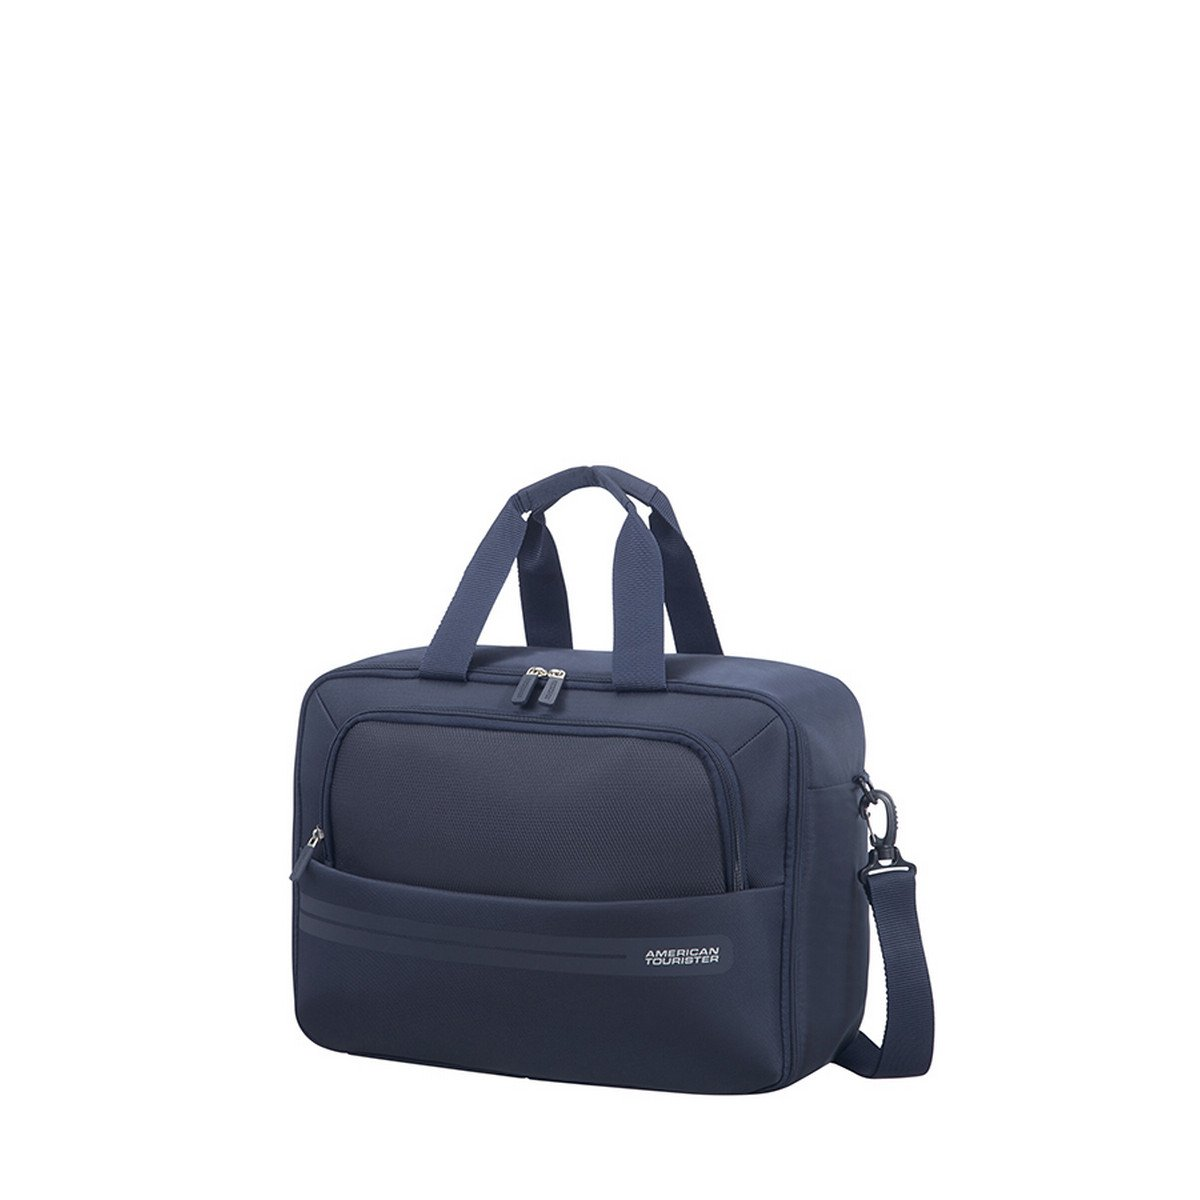 American Tourister Summer Voyager 3-Way Boarding Bag, 40 cm, 26 L, Midnight Blue 85464/1549